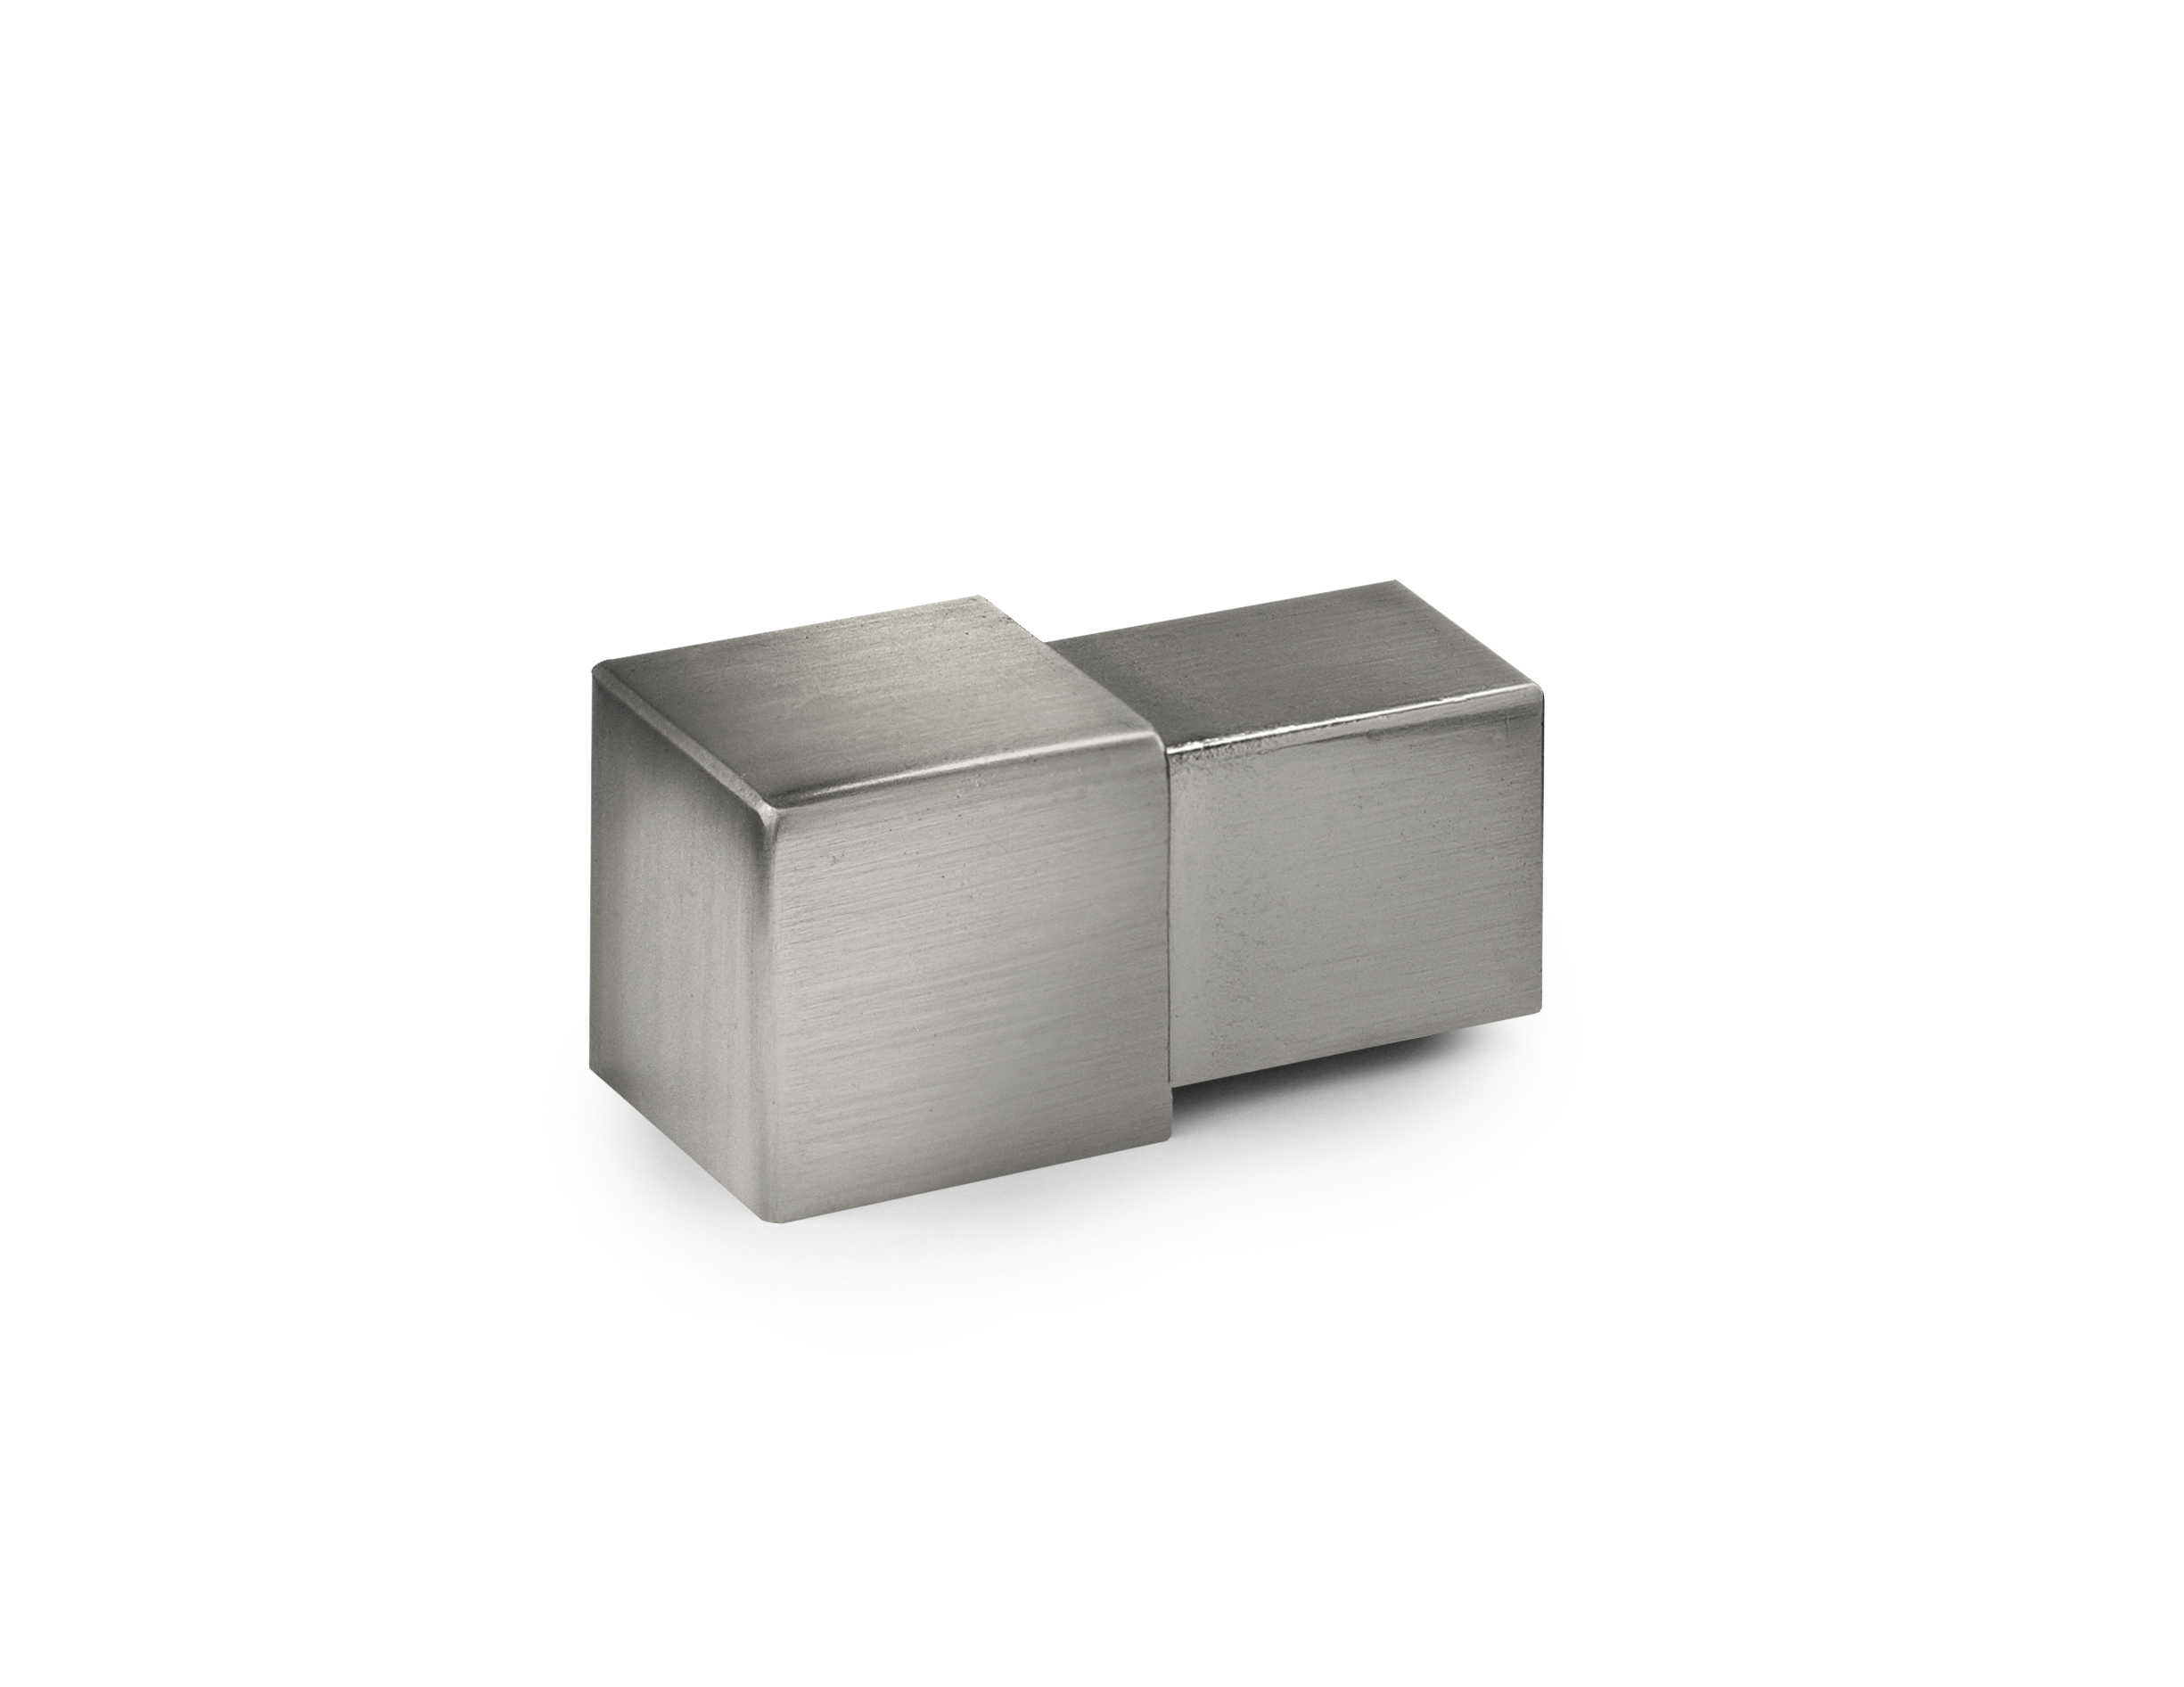 12.5mm Stainless Steel Square Edge Corner 2pk